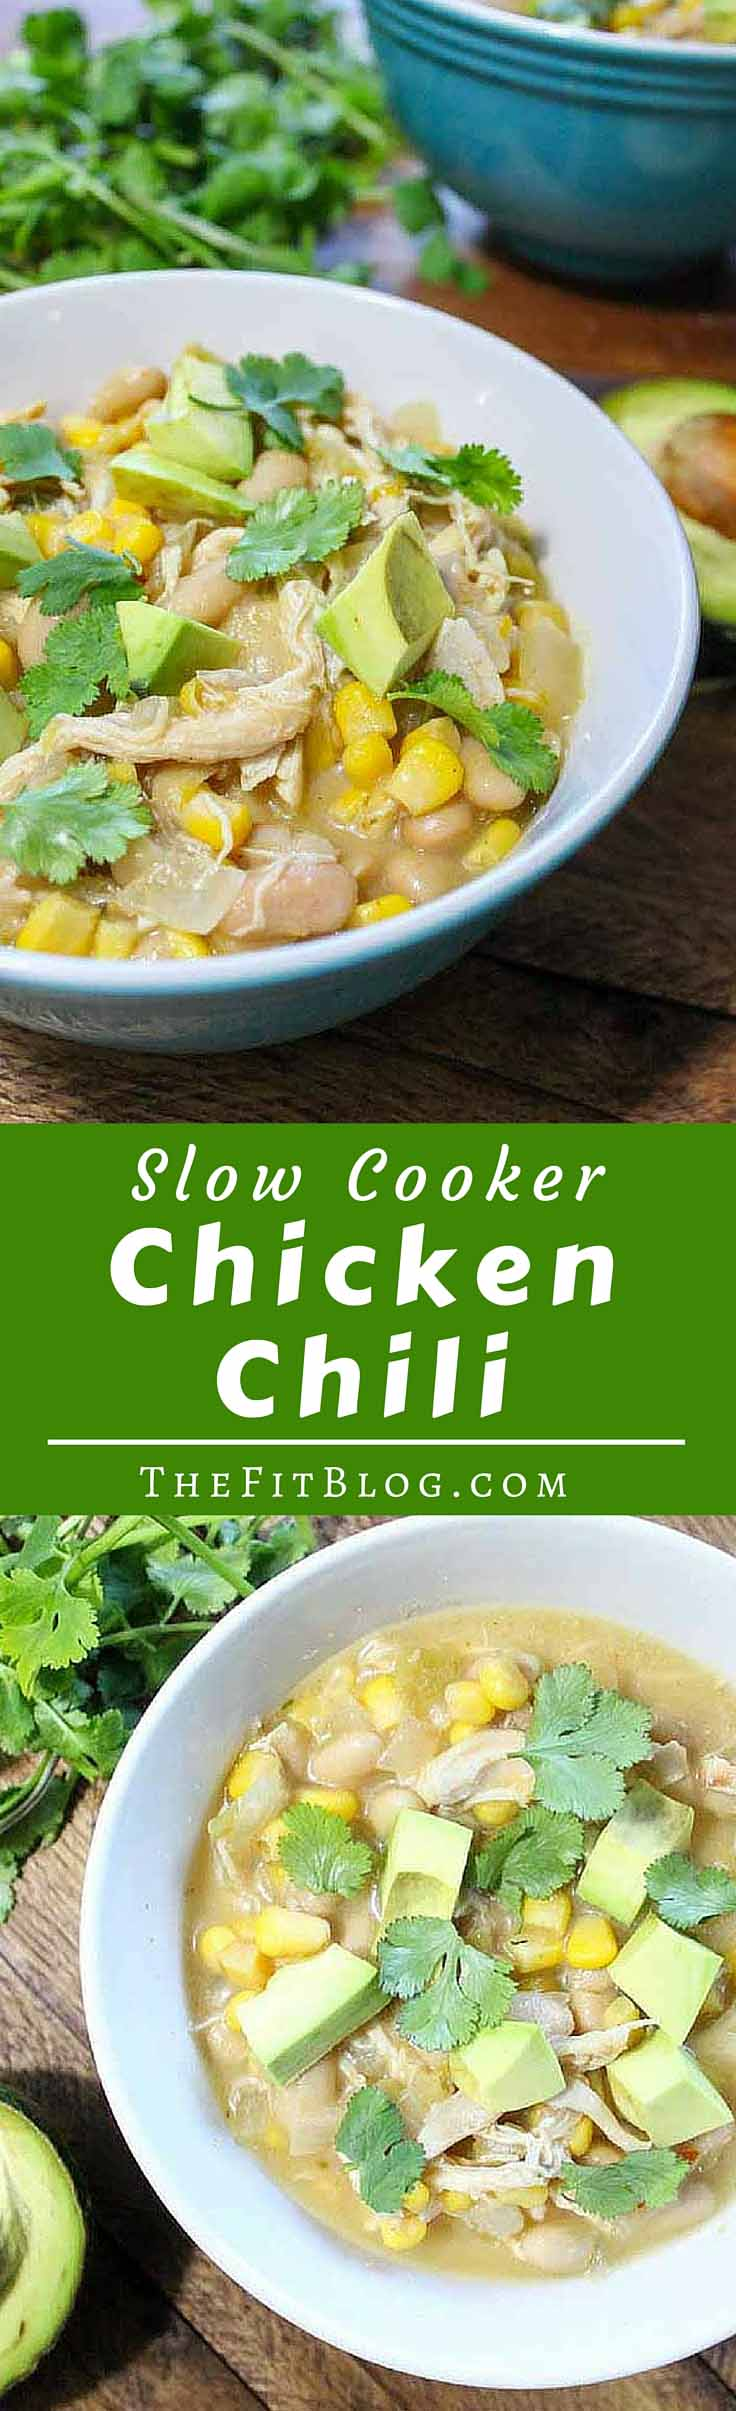 Slow Cooker White Chicken Chili - The day we made this chili was the best day of the week. It's hearty, zippy and feel-good, but healthy at the same time. And it's bursting at the seams with comforting flavor.